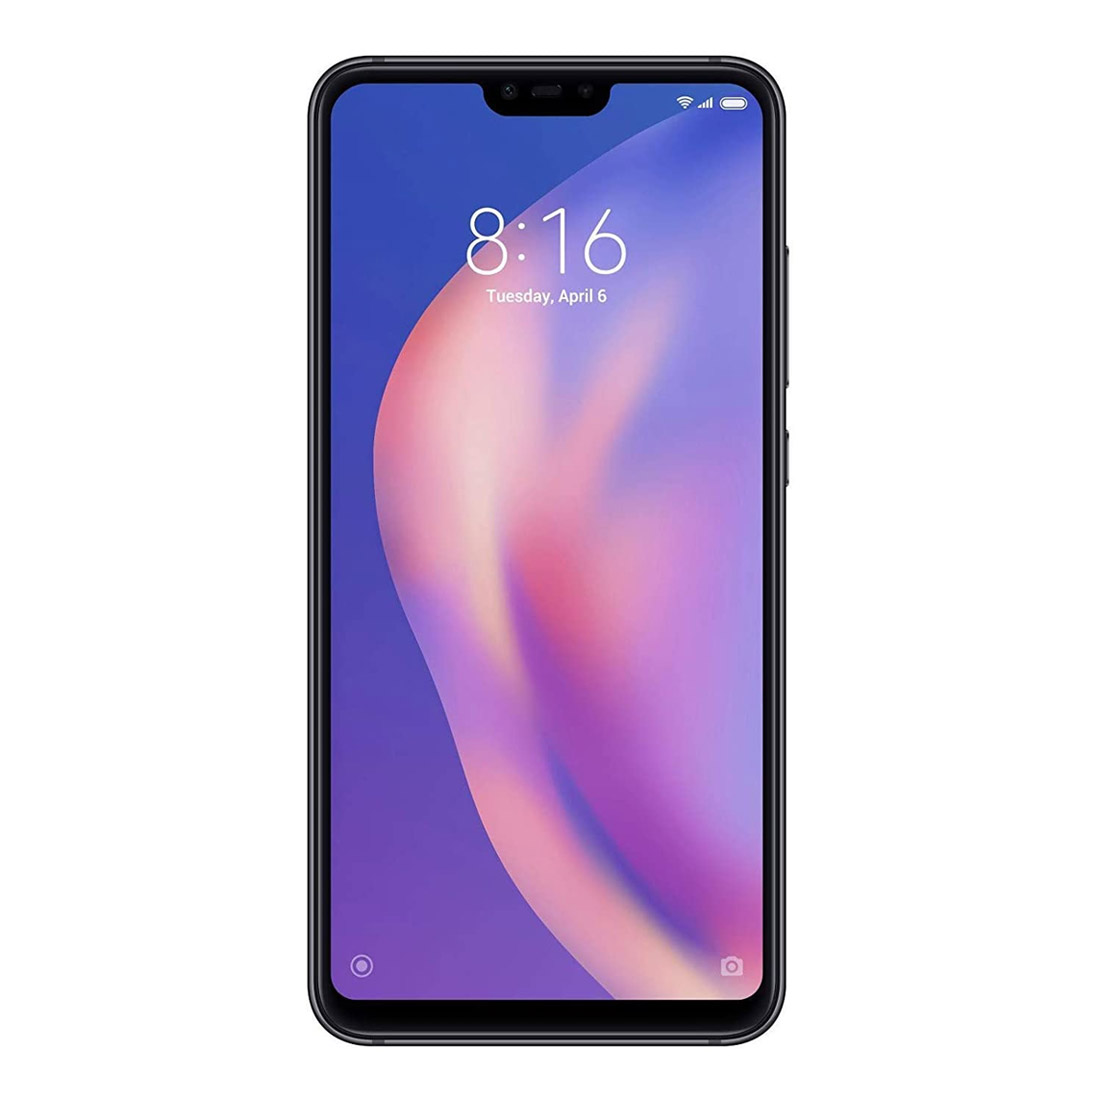 Xiaomi Mi 8 Lite (Dual Sim 4G, 128GB/6GB) - Midnight Black